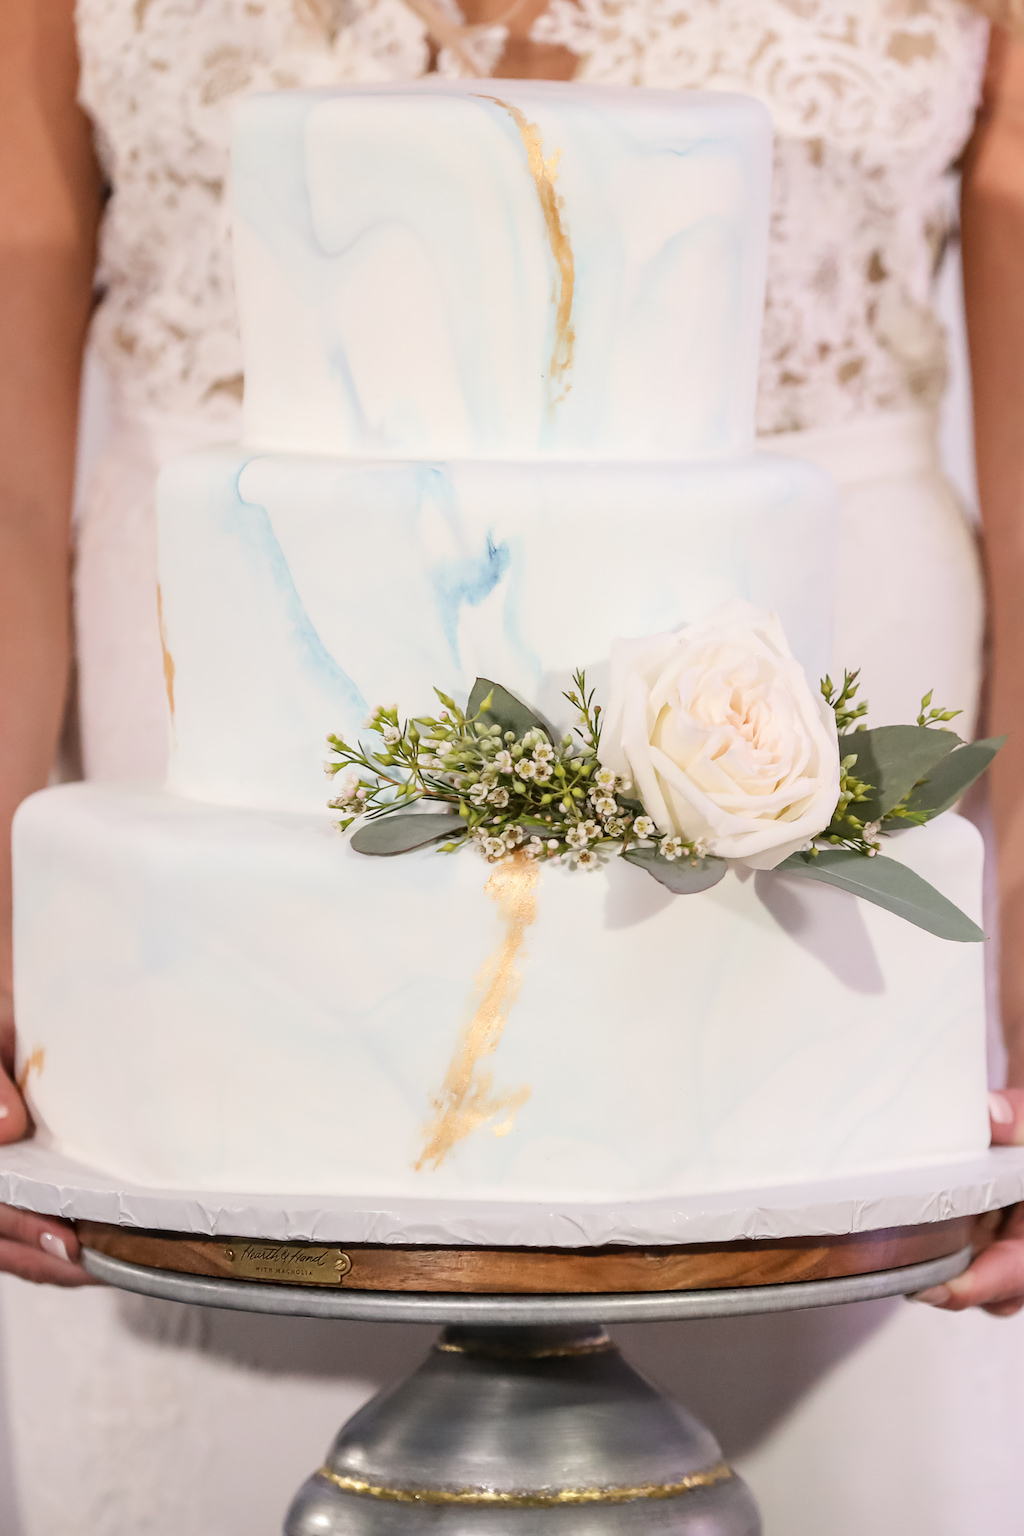 Three Tier Round Blue and Gold White Marble Wedding Cake on Silver Cake Stand, with White Rose and Greenery